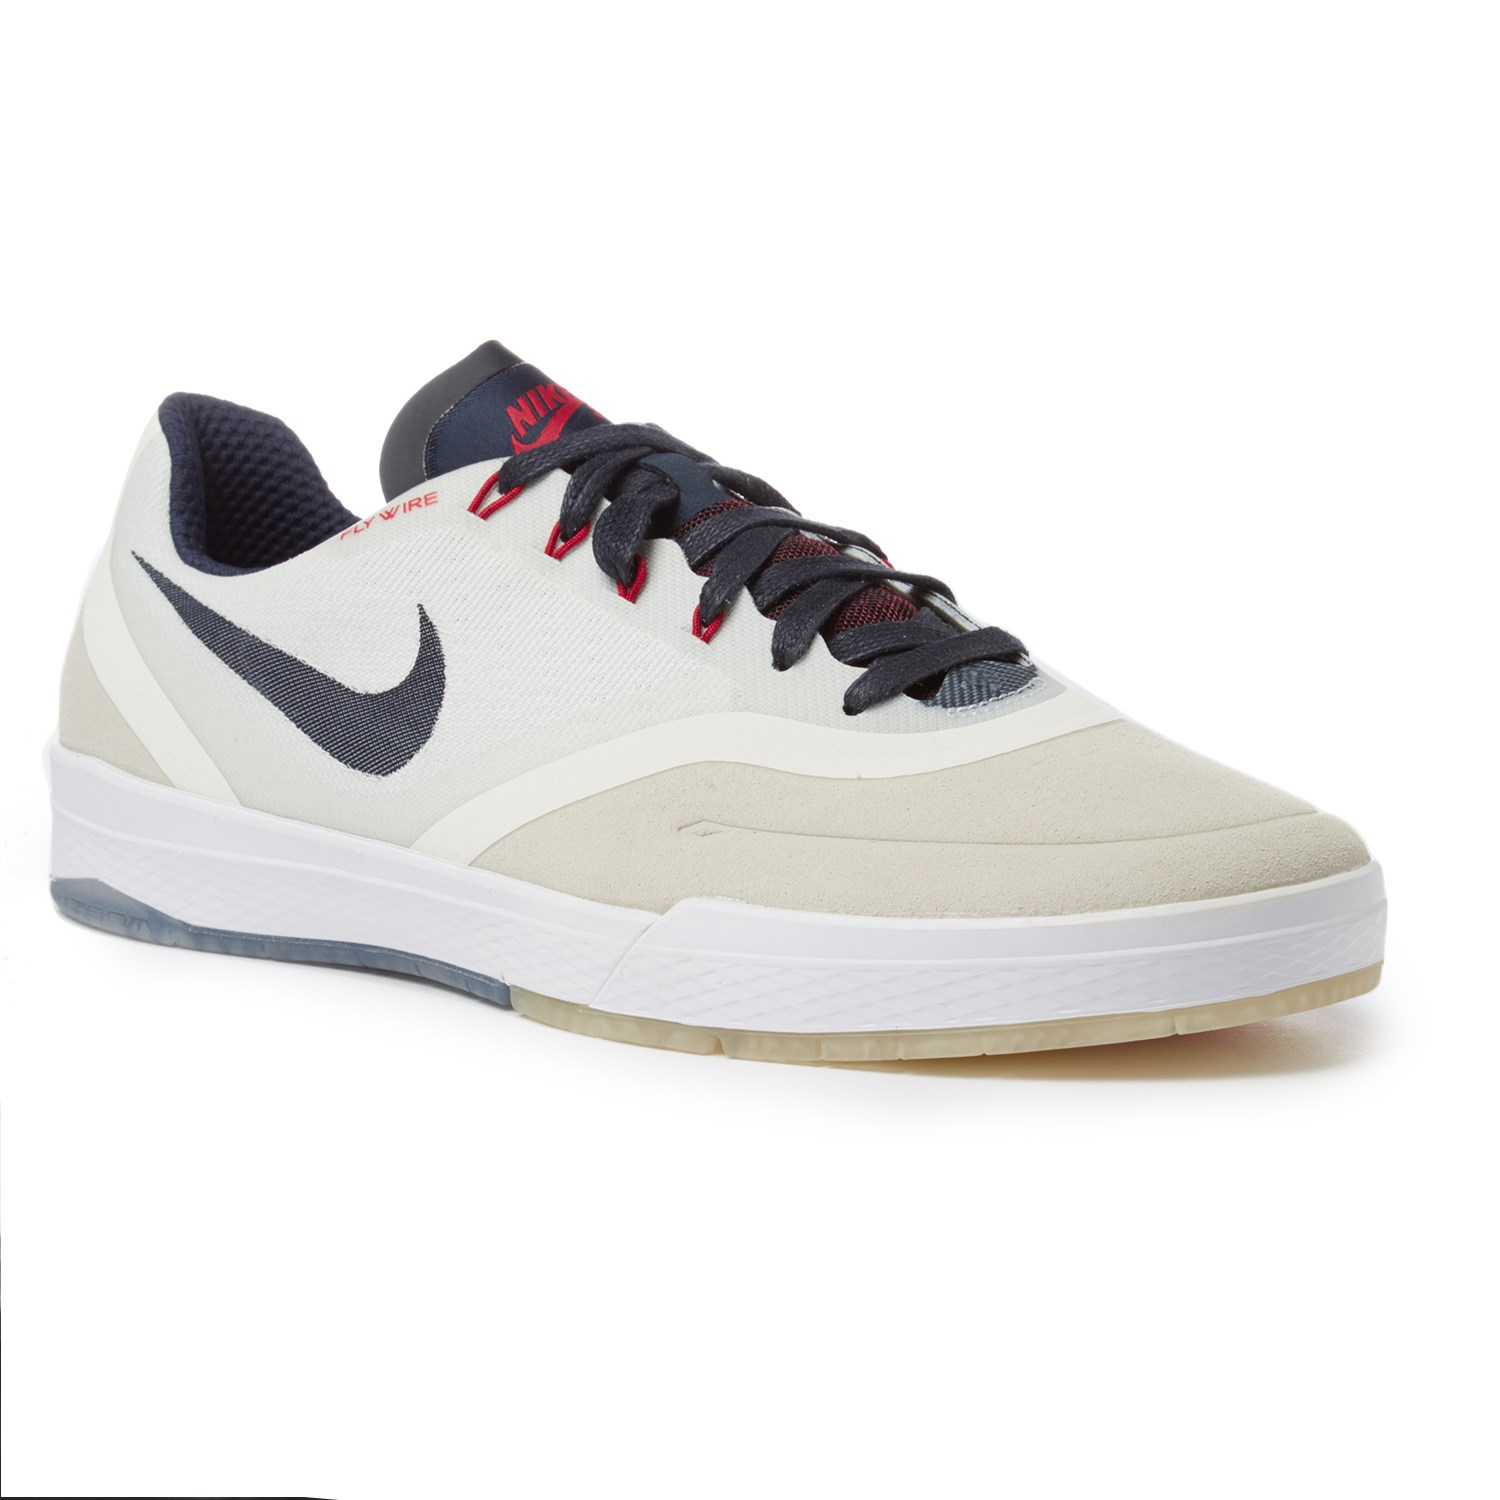 Skate shoes size 9 - Skate Shoes Size 9 14